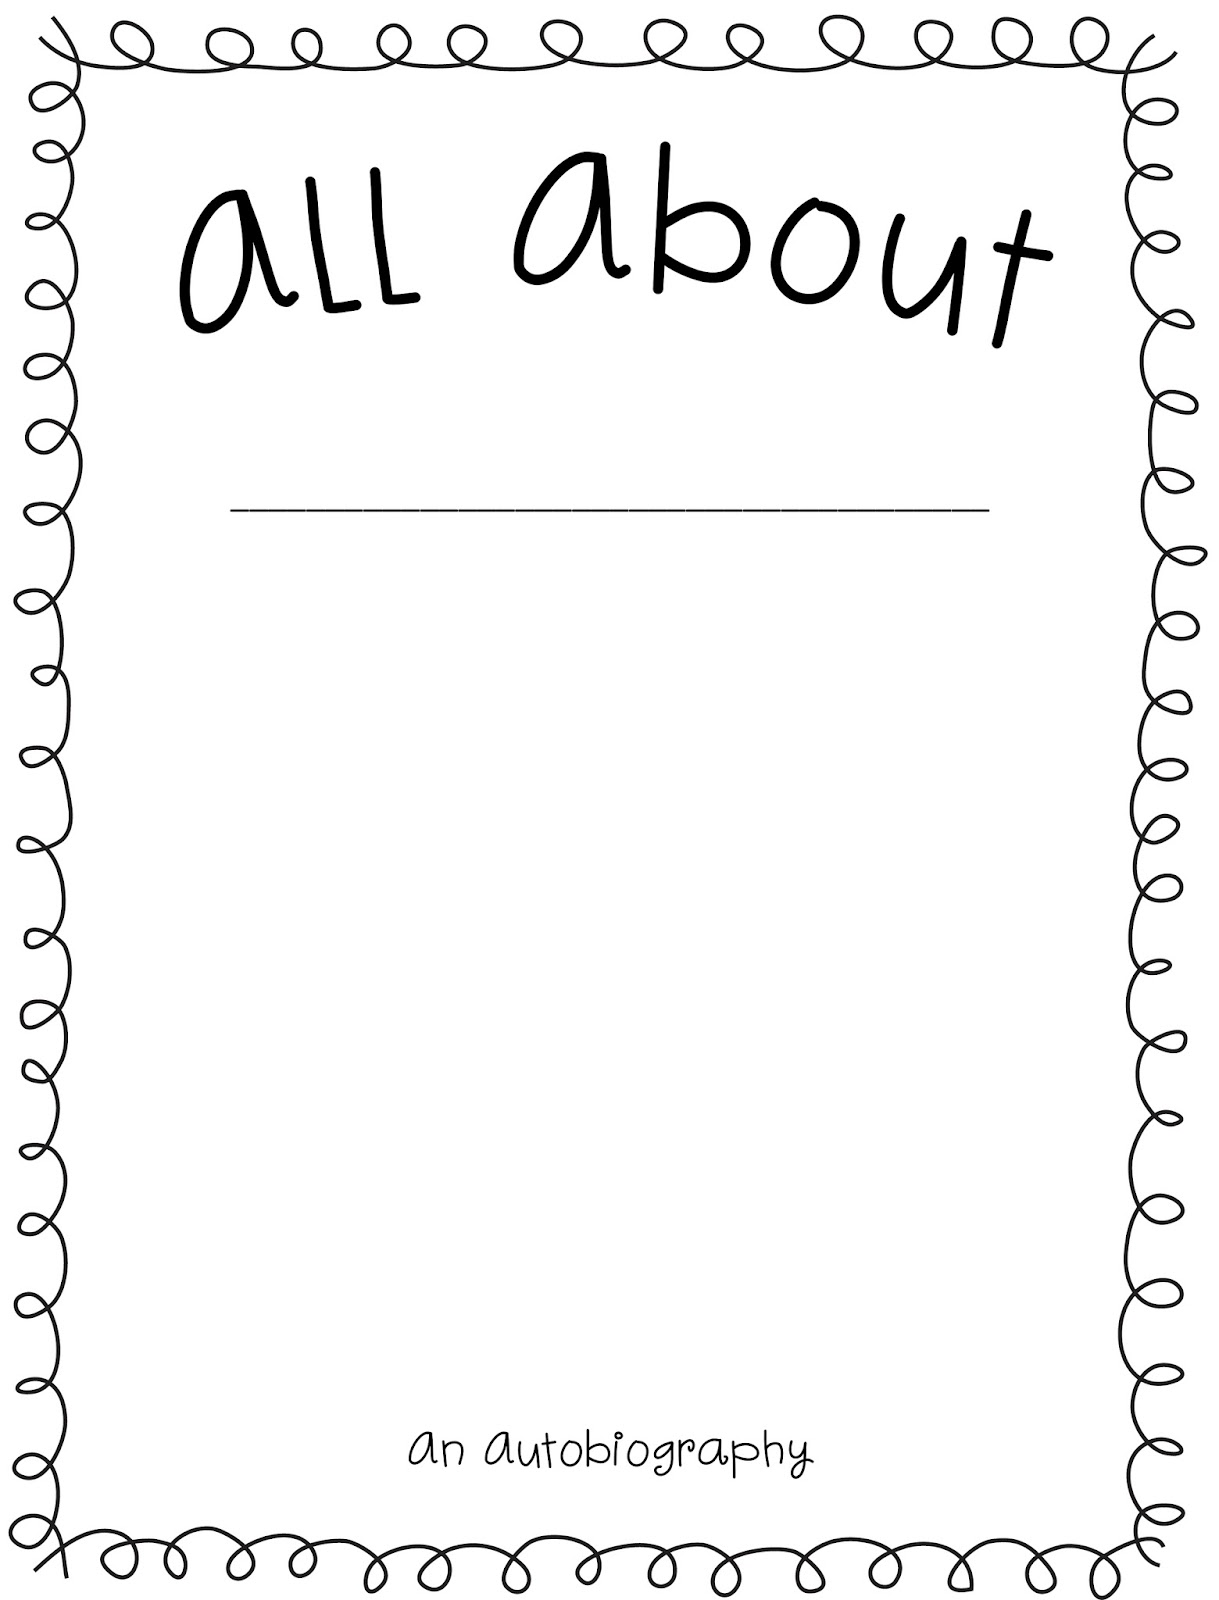 autobiography cover page template - autobiography cover page example